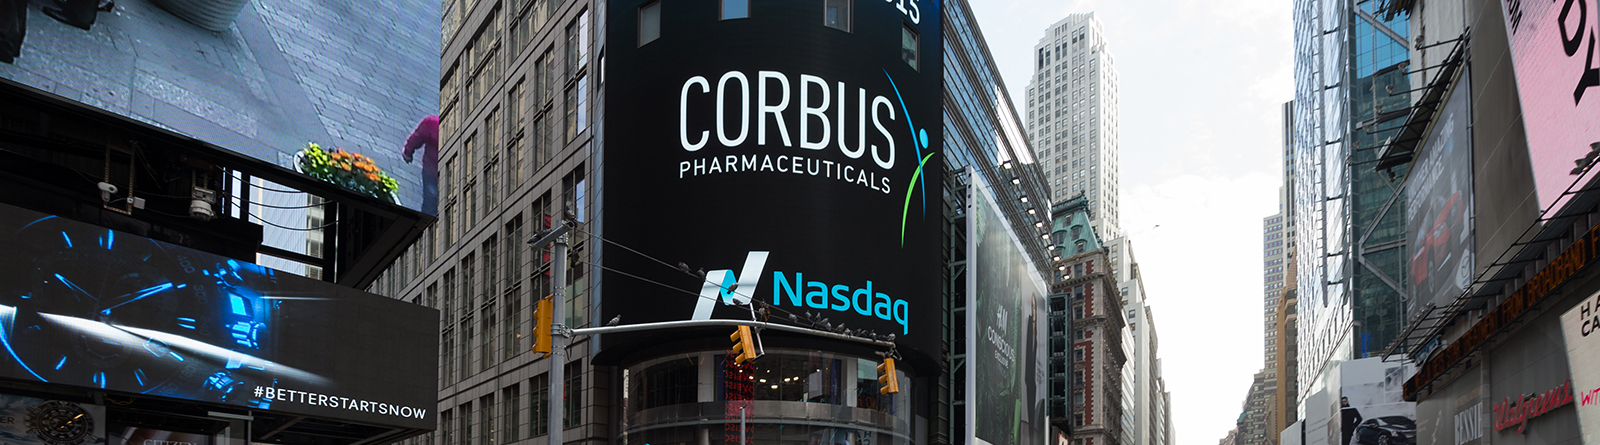 Corbus Pharmaceuticals Announces Presentation of Three Abstracts and New Lenabasum Data at 2019 ACR Annual Meeting Banner